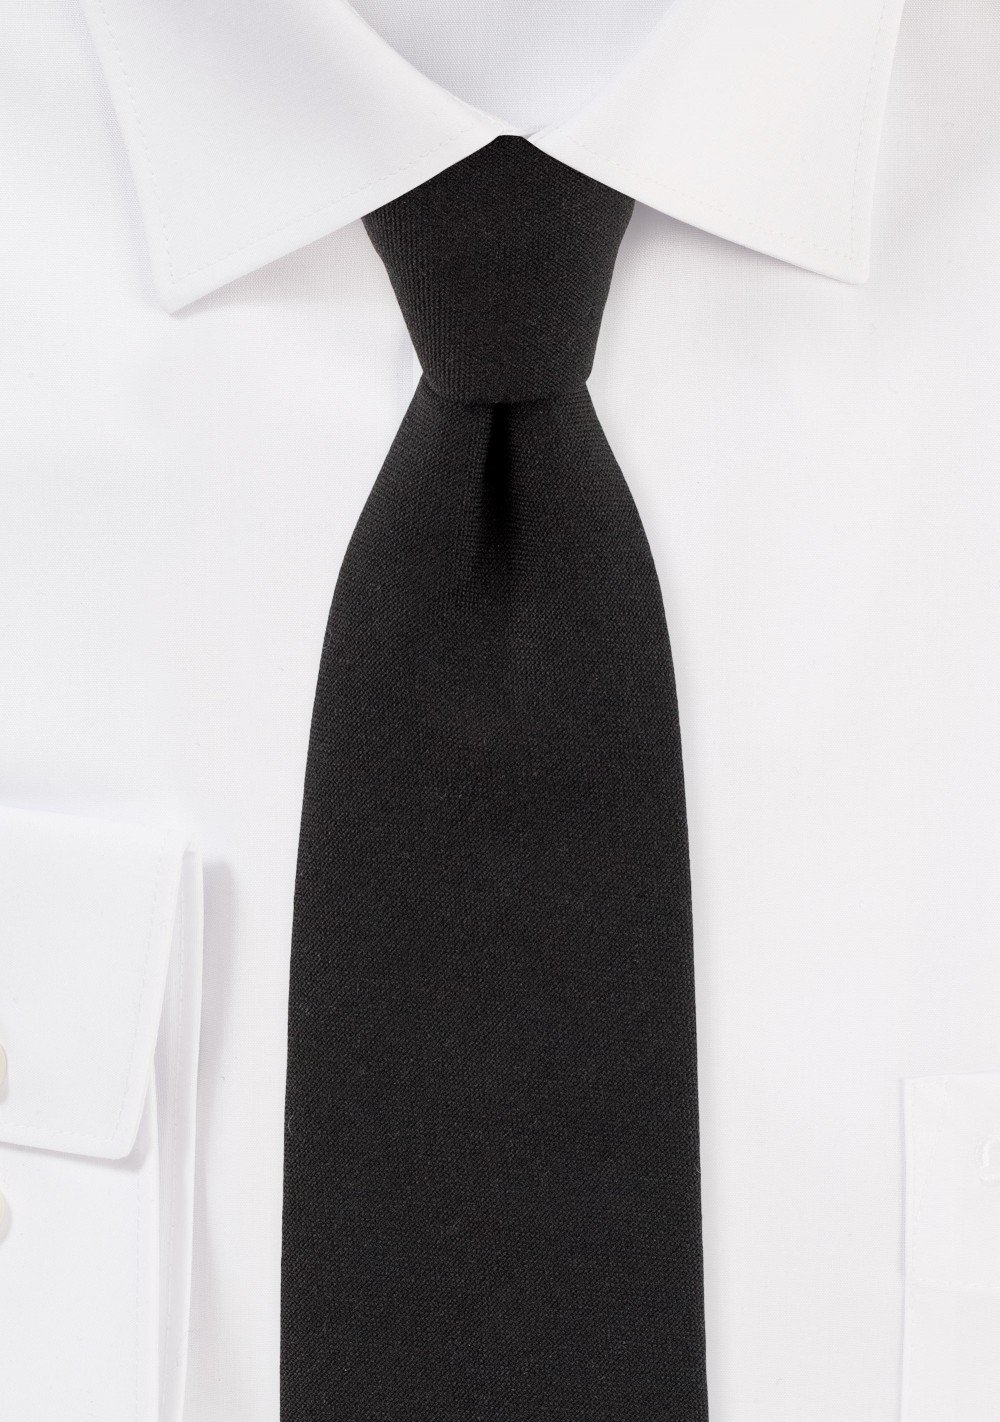 Matte Black Slim Cut Mens Tie in Cotton